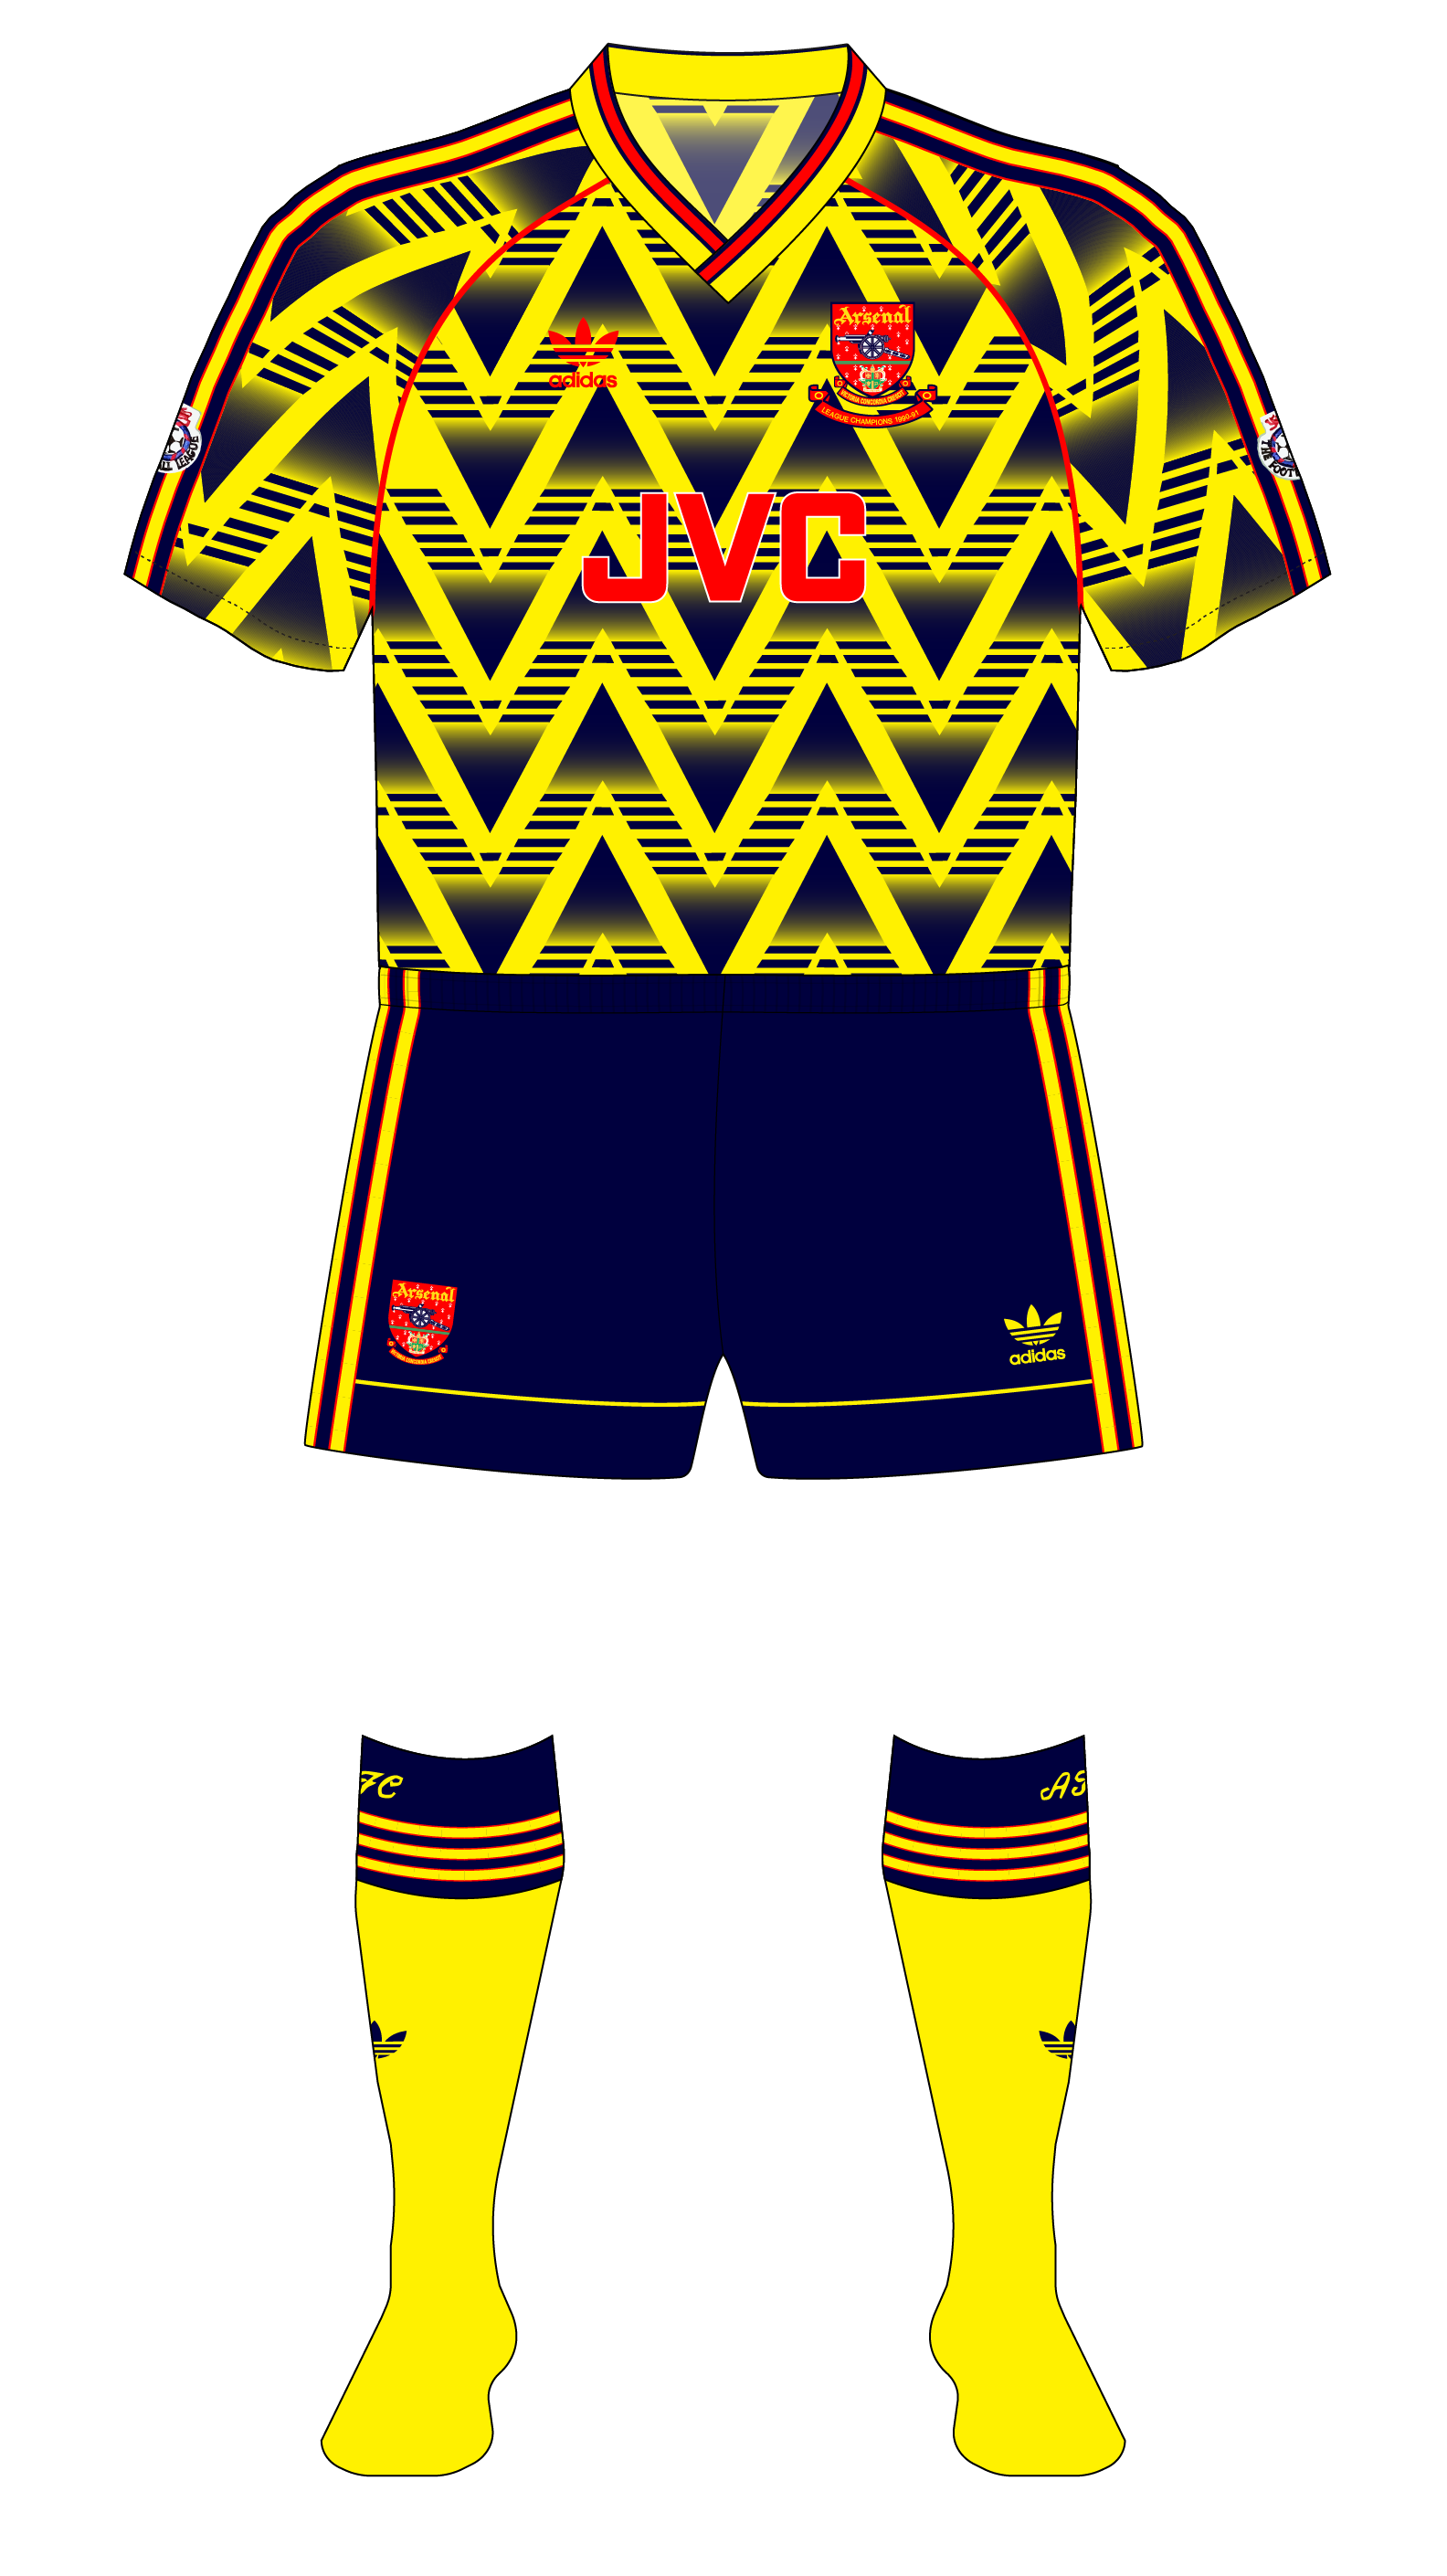 low priced e2a1e 5b7ad Arsenal-1991-1992-adidas-away-kit-shirt-bruised-banana-01 ...